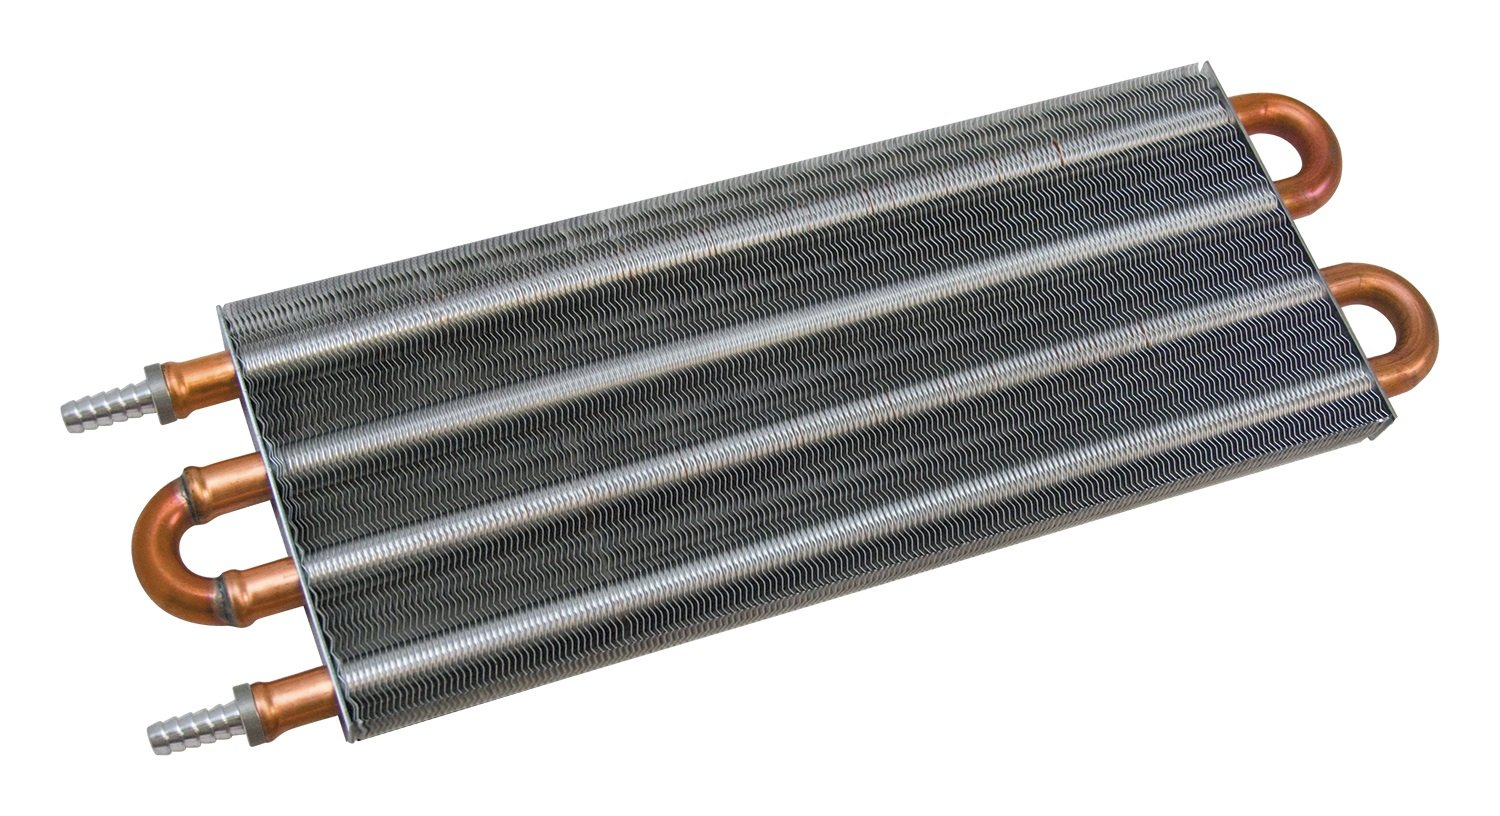 Flex-a-lite 4112 TransLife Transmission Oil Cooler Kit - 12, 000 GVW